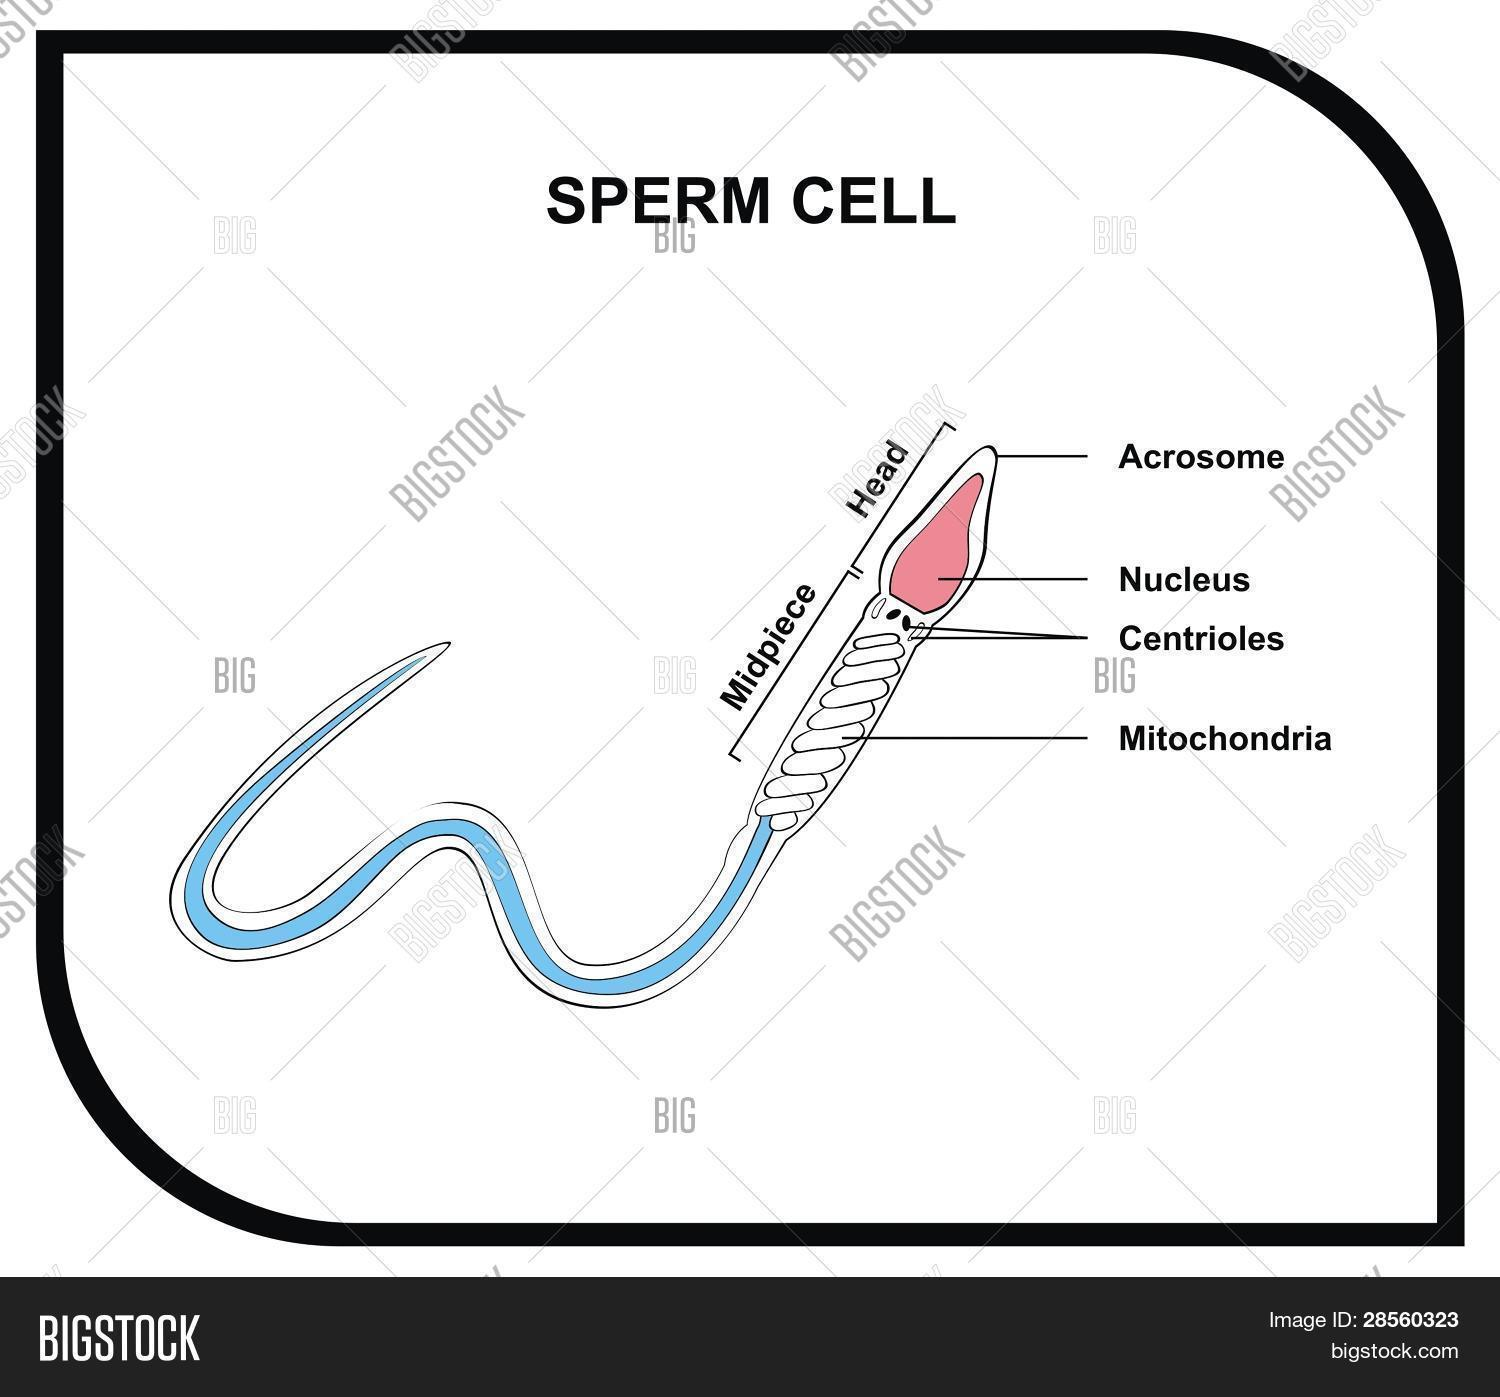 size of a sperm cell